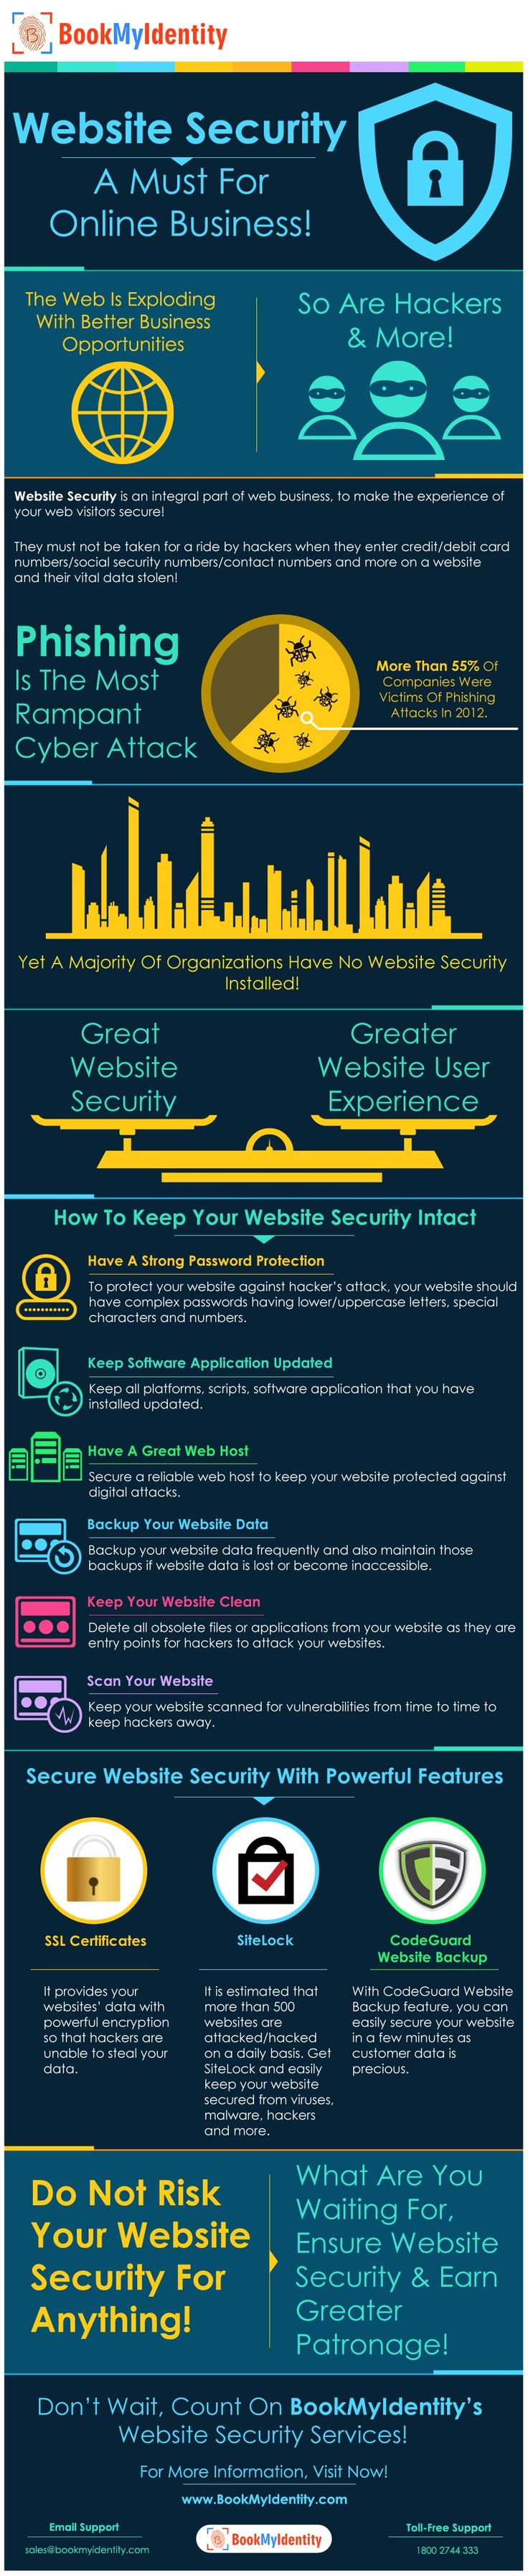 Have an online business? Consider auditing your website security right away as hackers are more than trying to tarnish your website security in more ways than you could ever think! Go ahead and dig deeper into the basics of website security now!